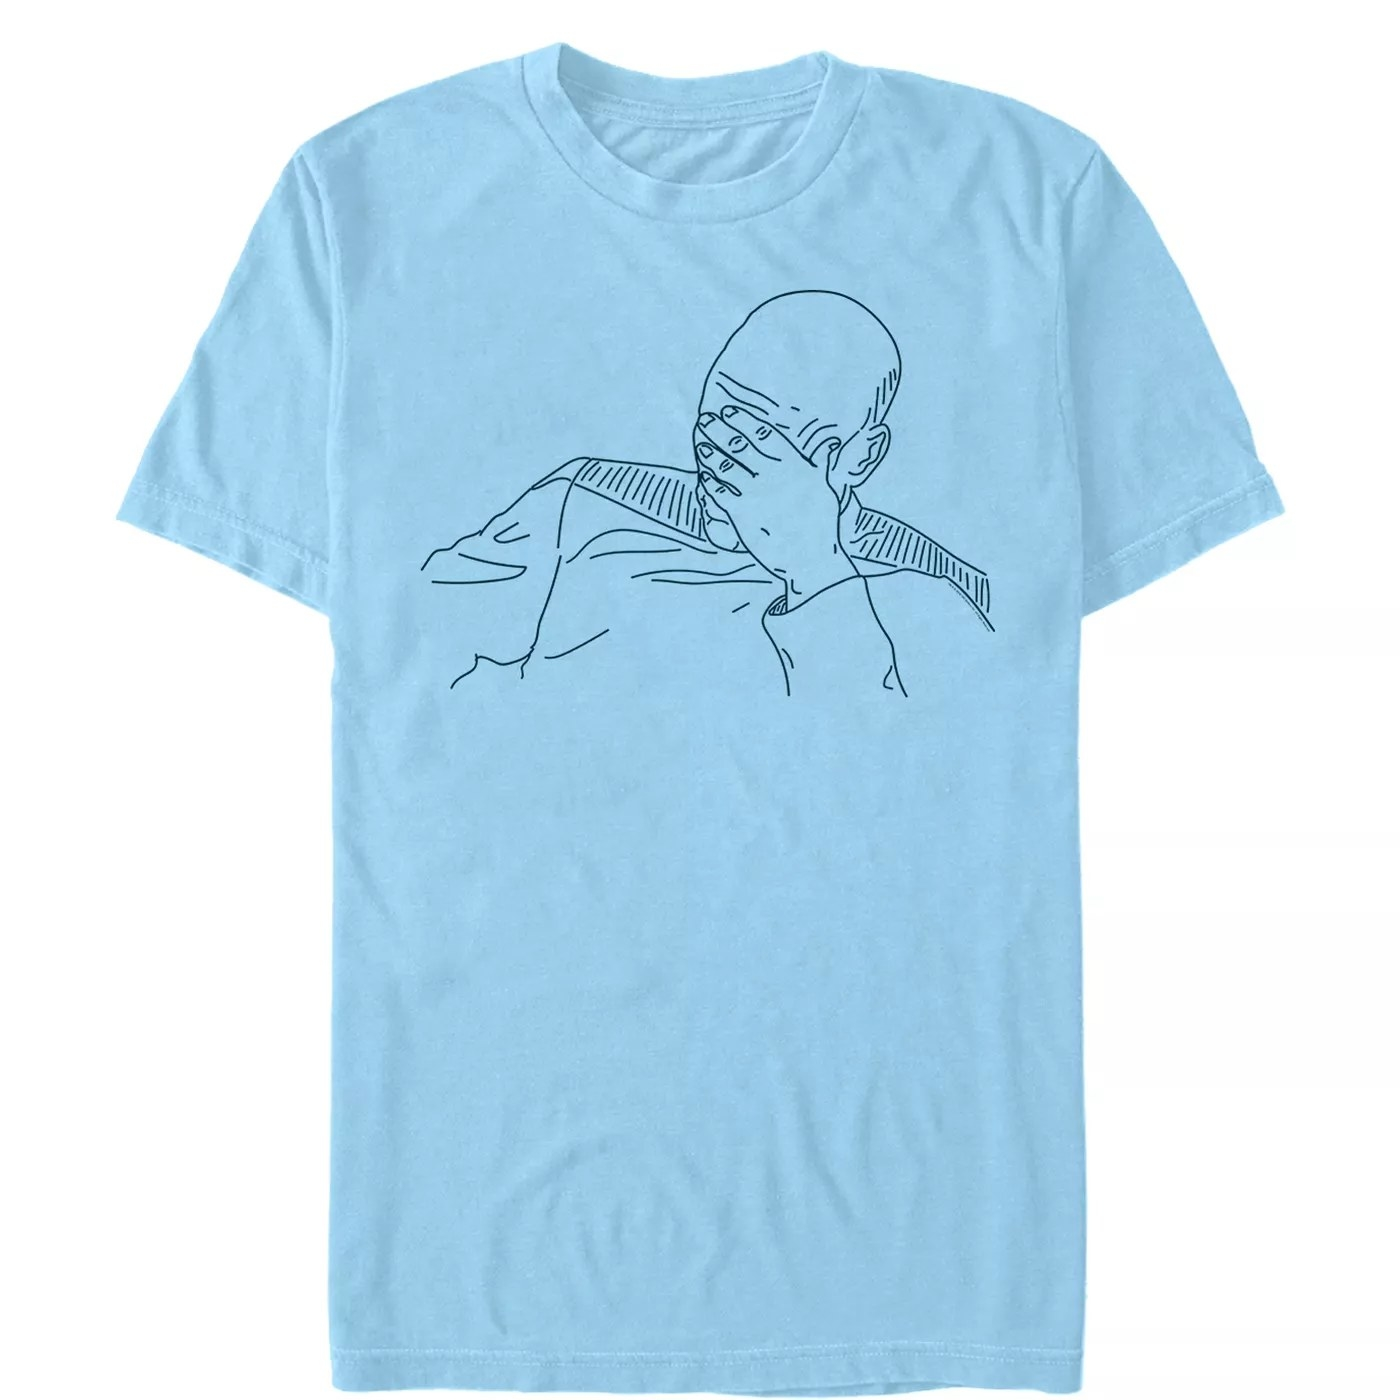 A blue shirt with Captain Picard with his hand covering his face